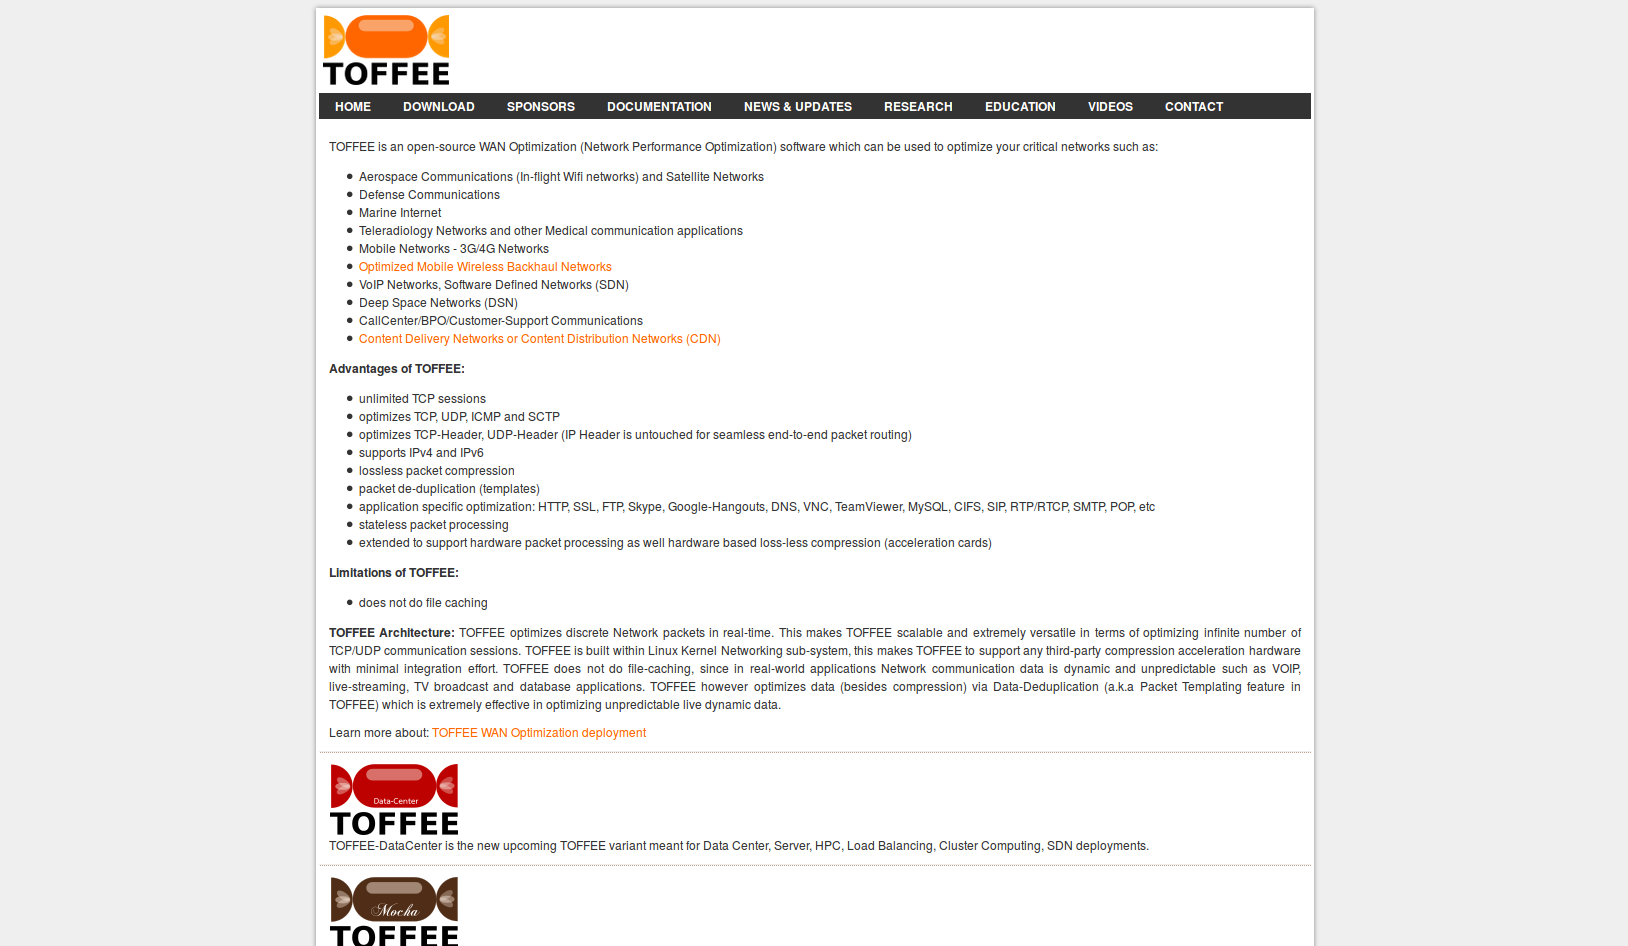 Screenshot of old The TOFFEE Project website built from scratch with PHP